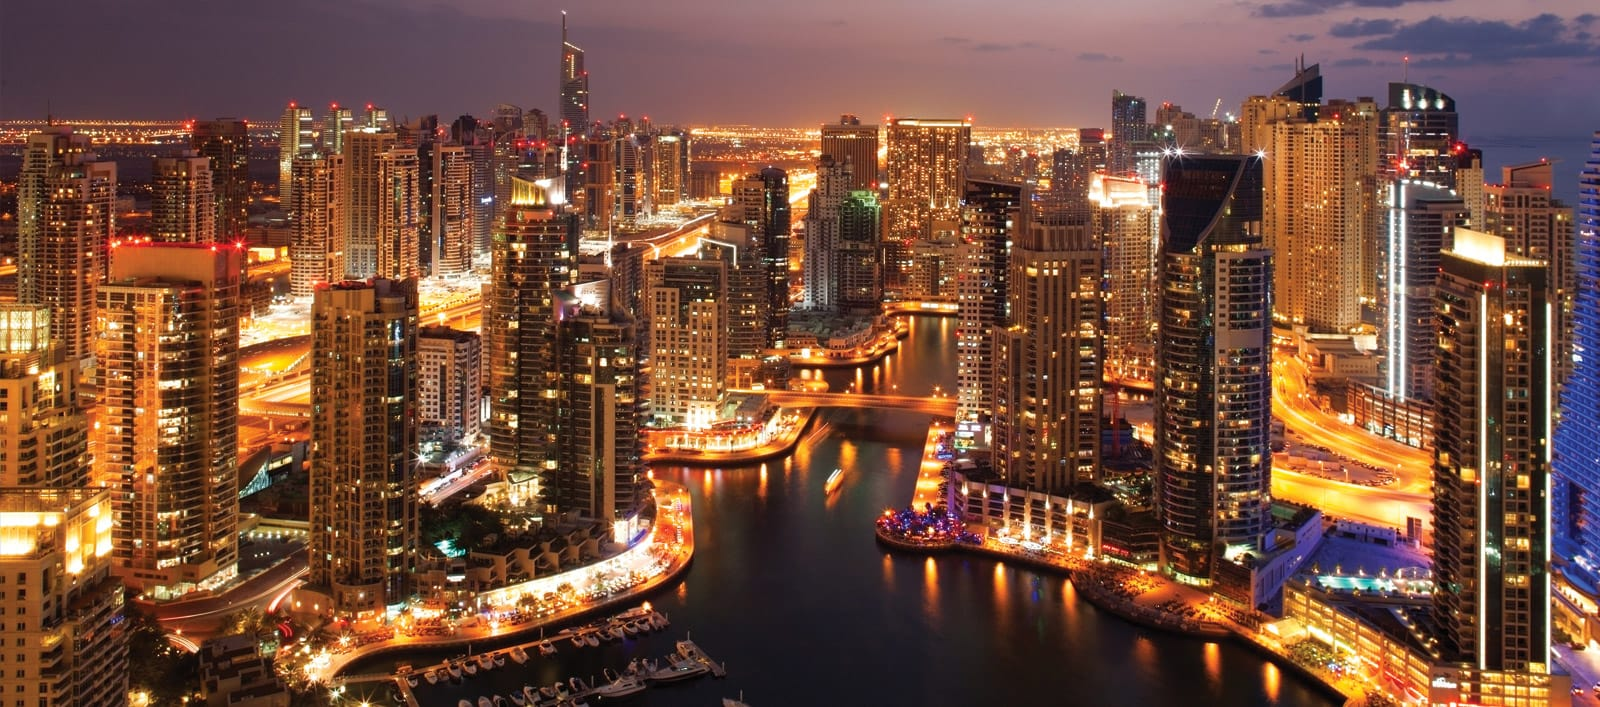 The Dubai Marina Yacht Destination